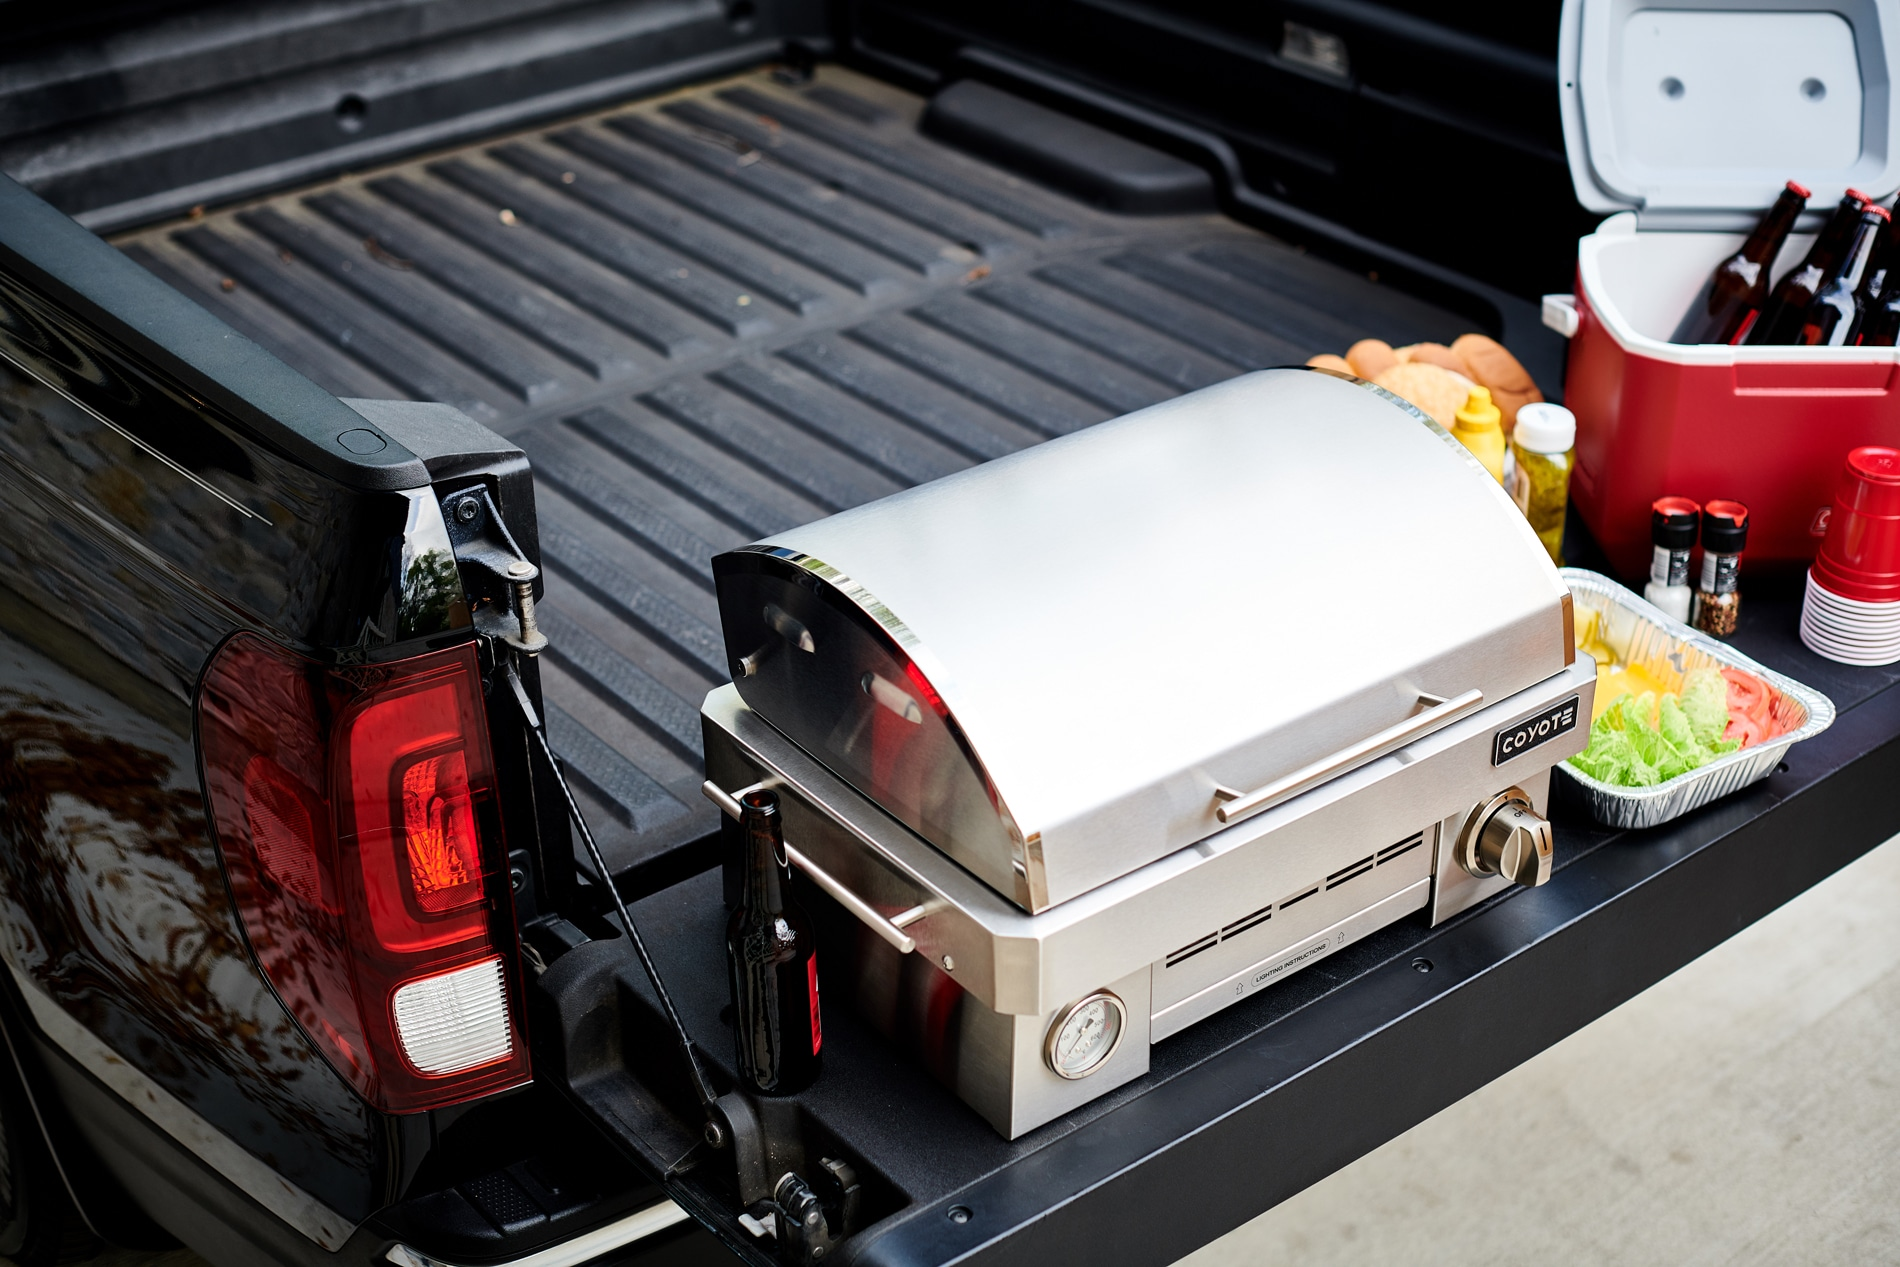 Coyote Outdoor Portable Grill in Truck Bed